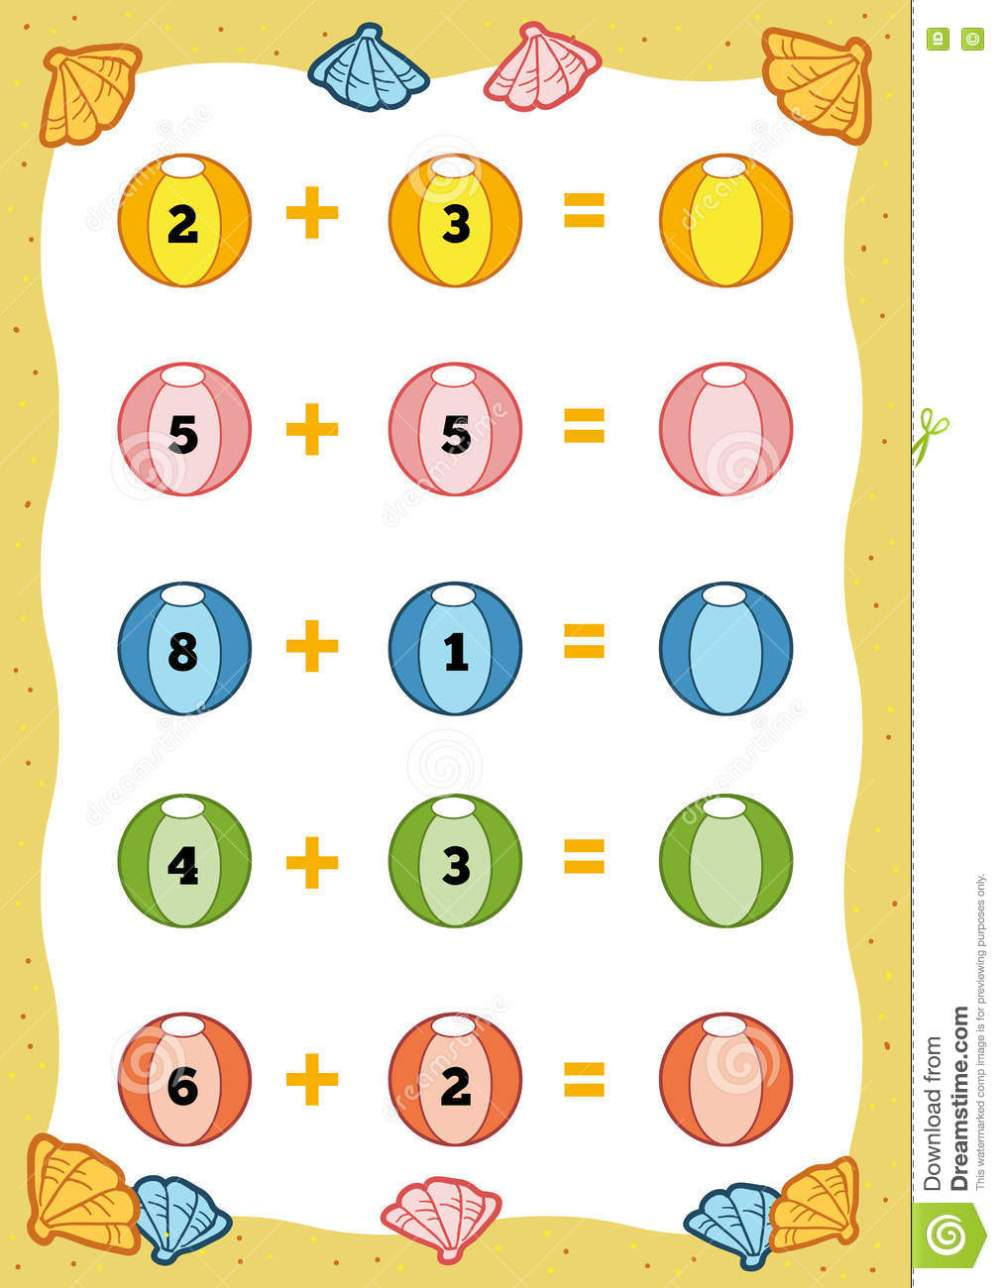 medium resolution of Counting Educational Game For Children. Addition Worksheets Stock Vector -  Illustration of group